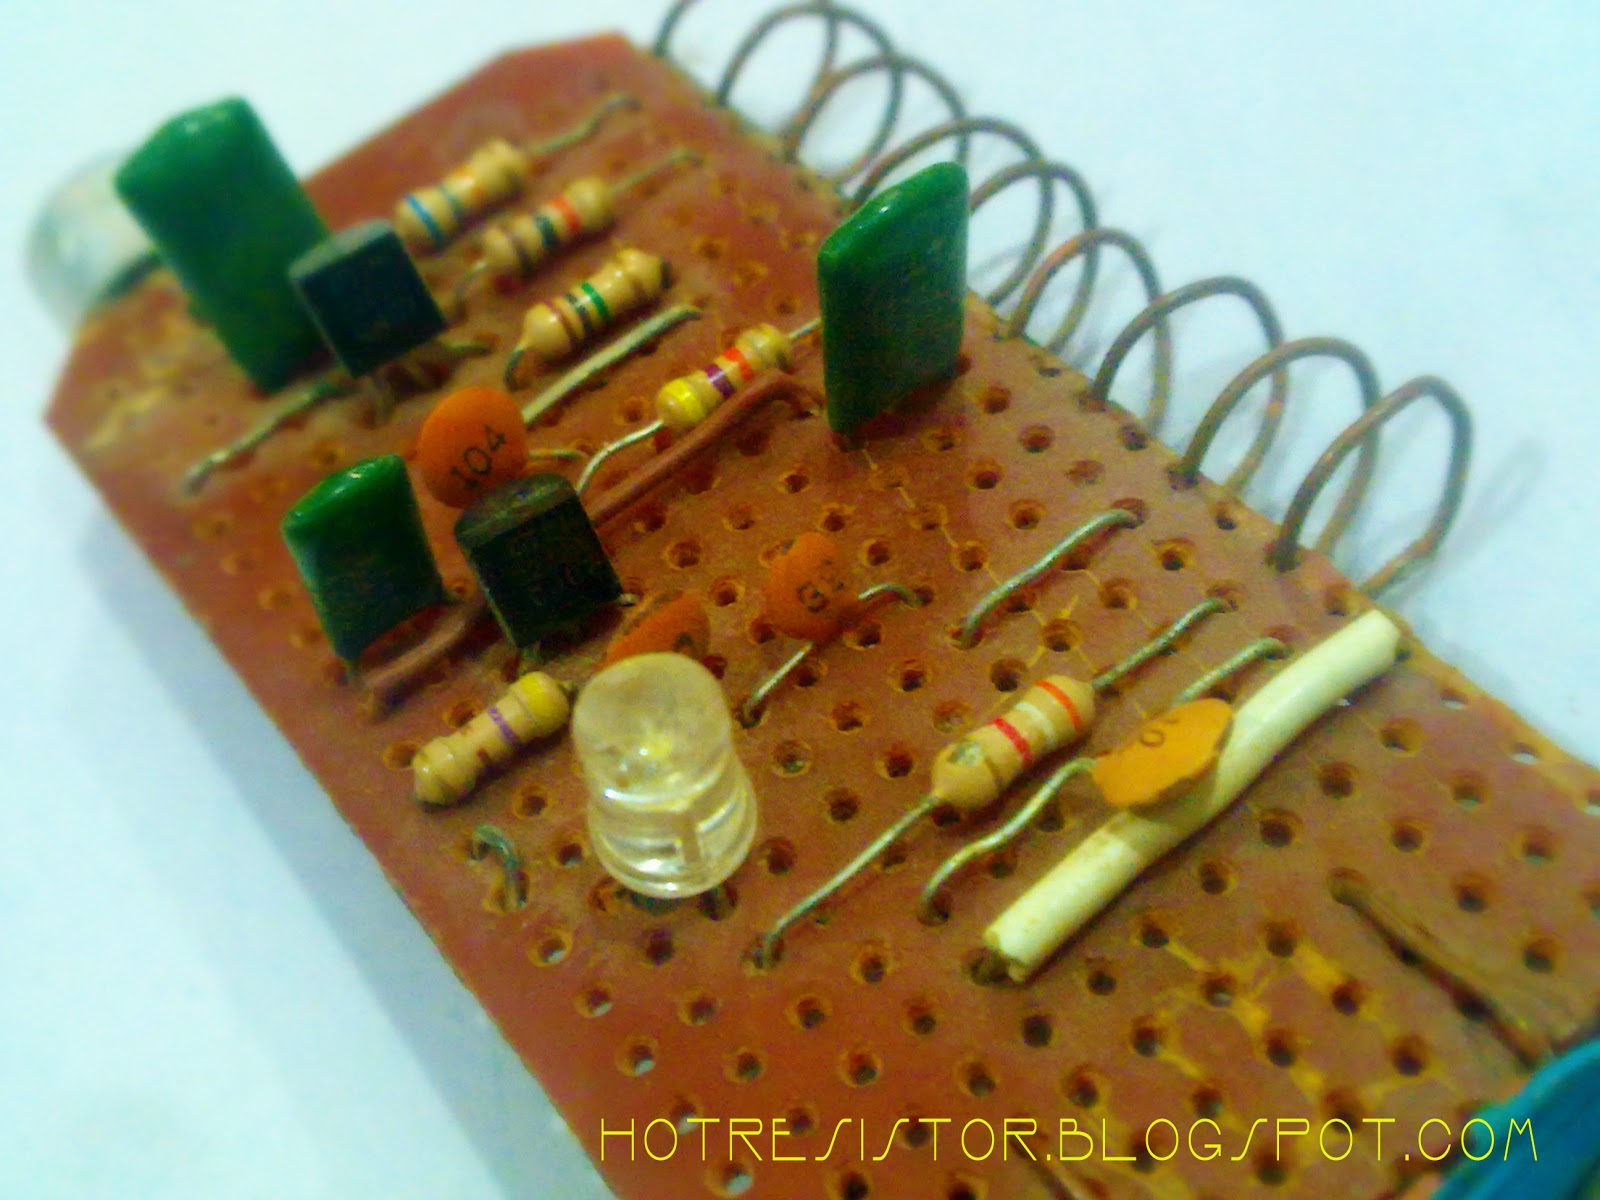 make simple fm transmitter using two 2n2222 transistors and simplemake simple fm transmitter using two 2n2222 transistors and simple handmade inductor